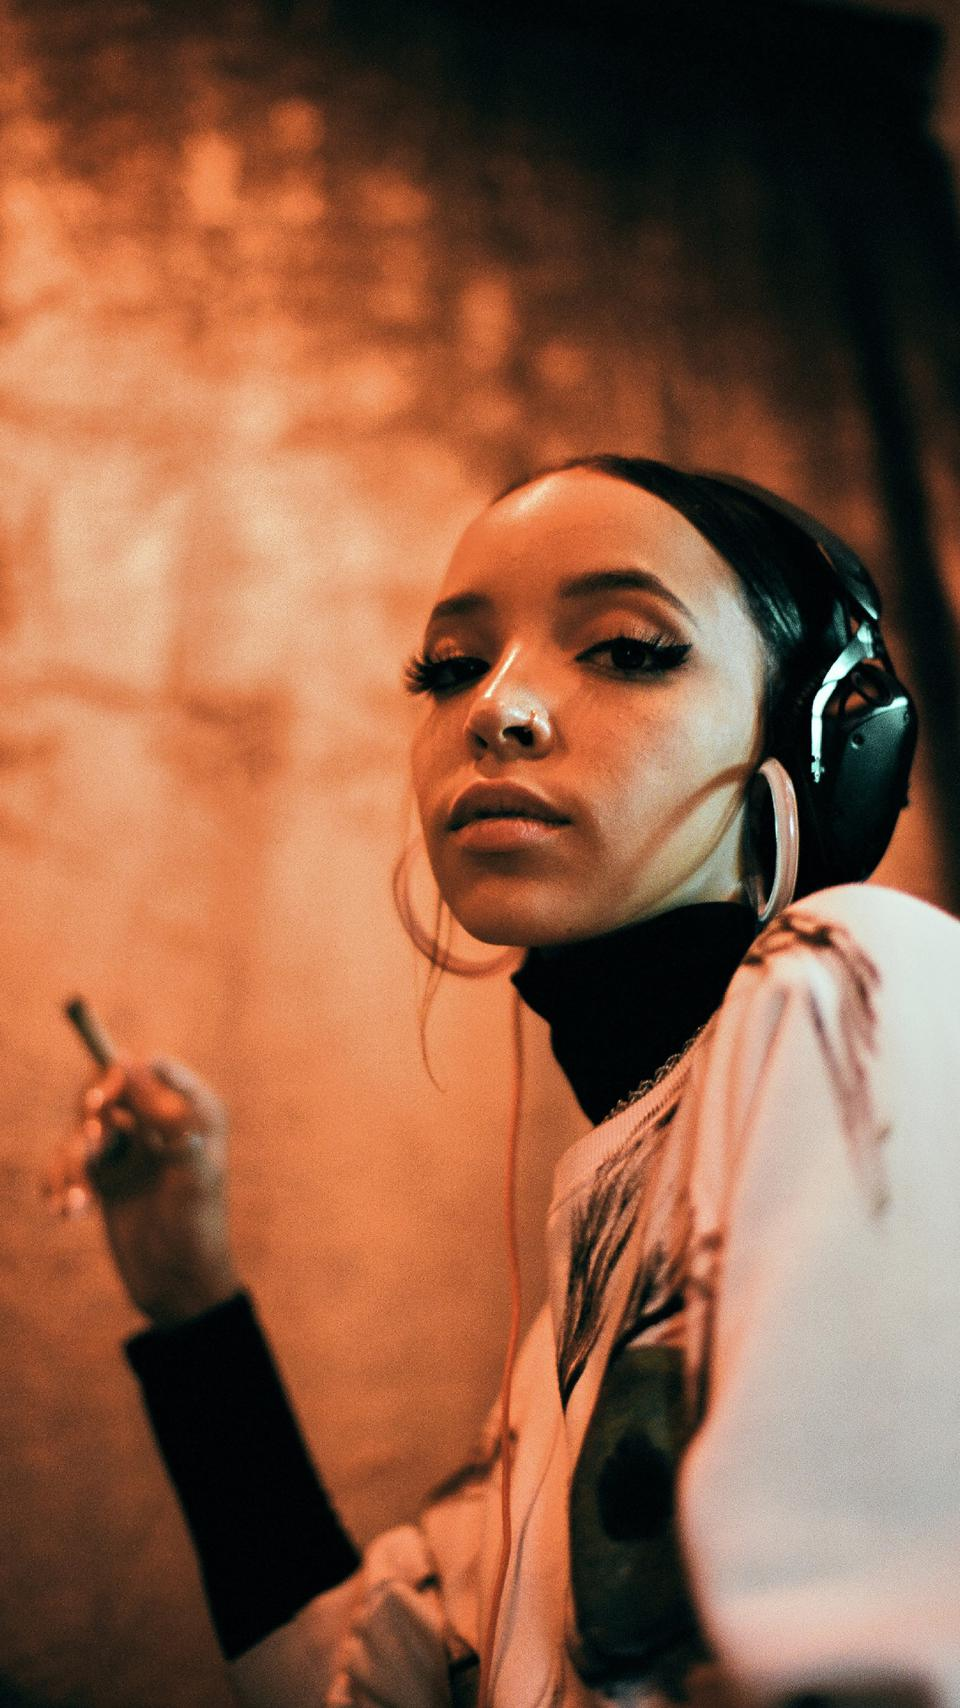 Singer Tinashe opens up about cannabis and creativity in the latest episode of 'High Tales.'